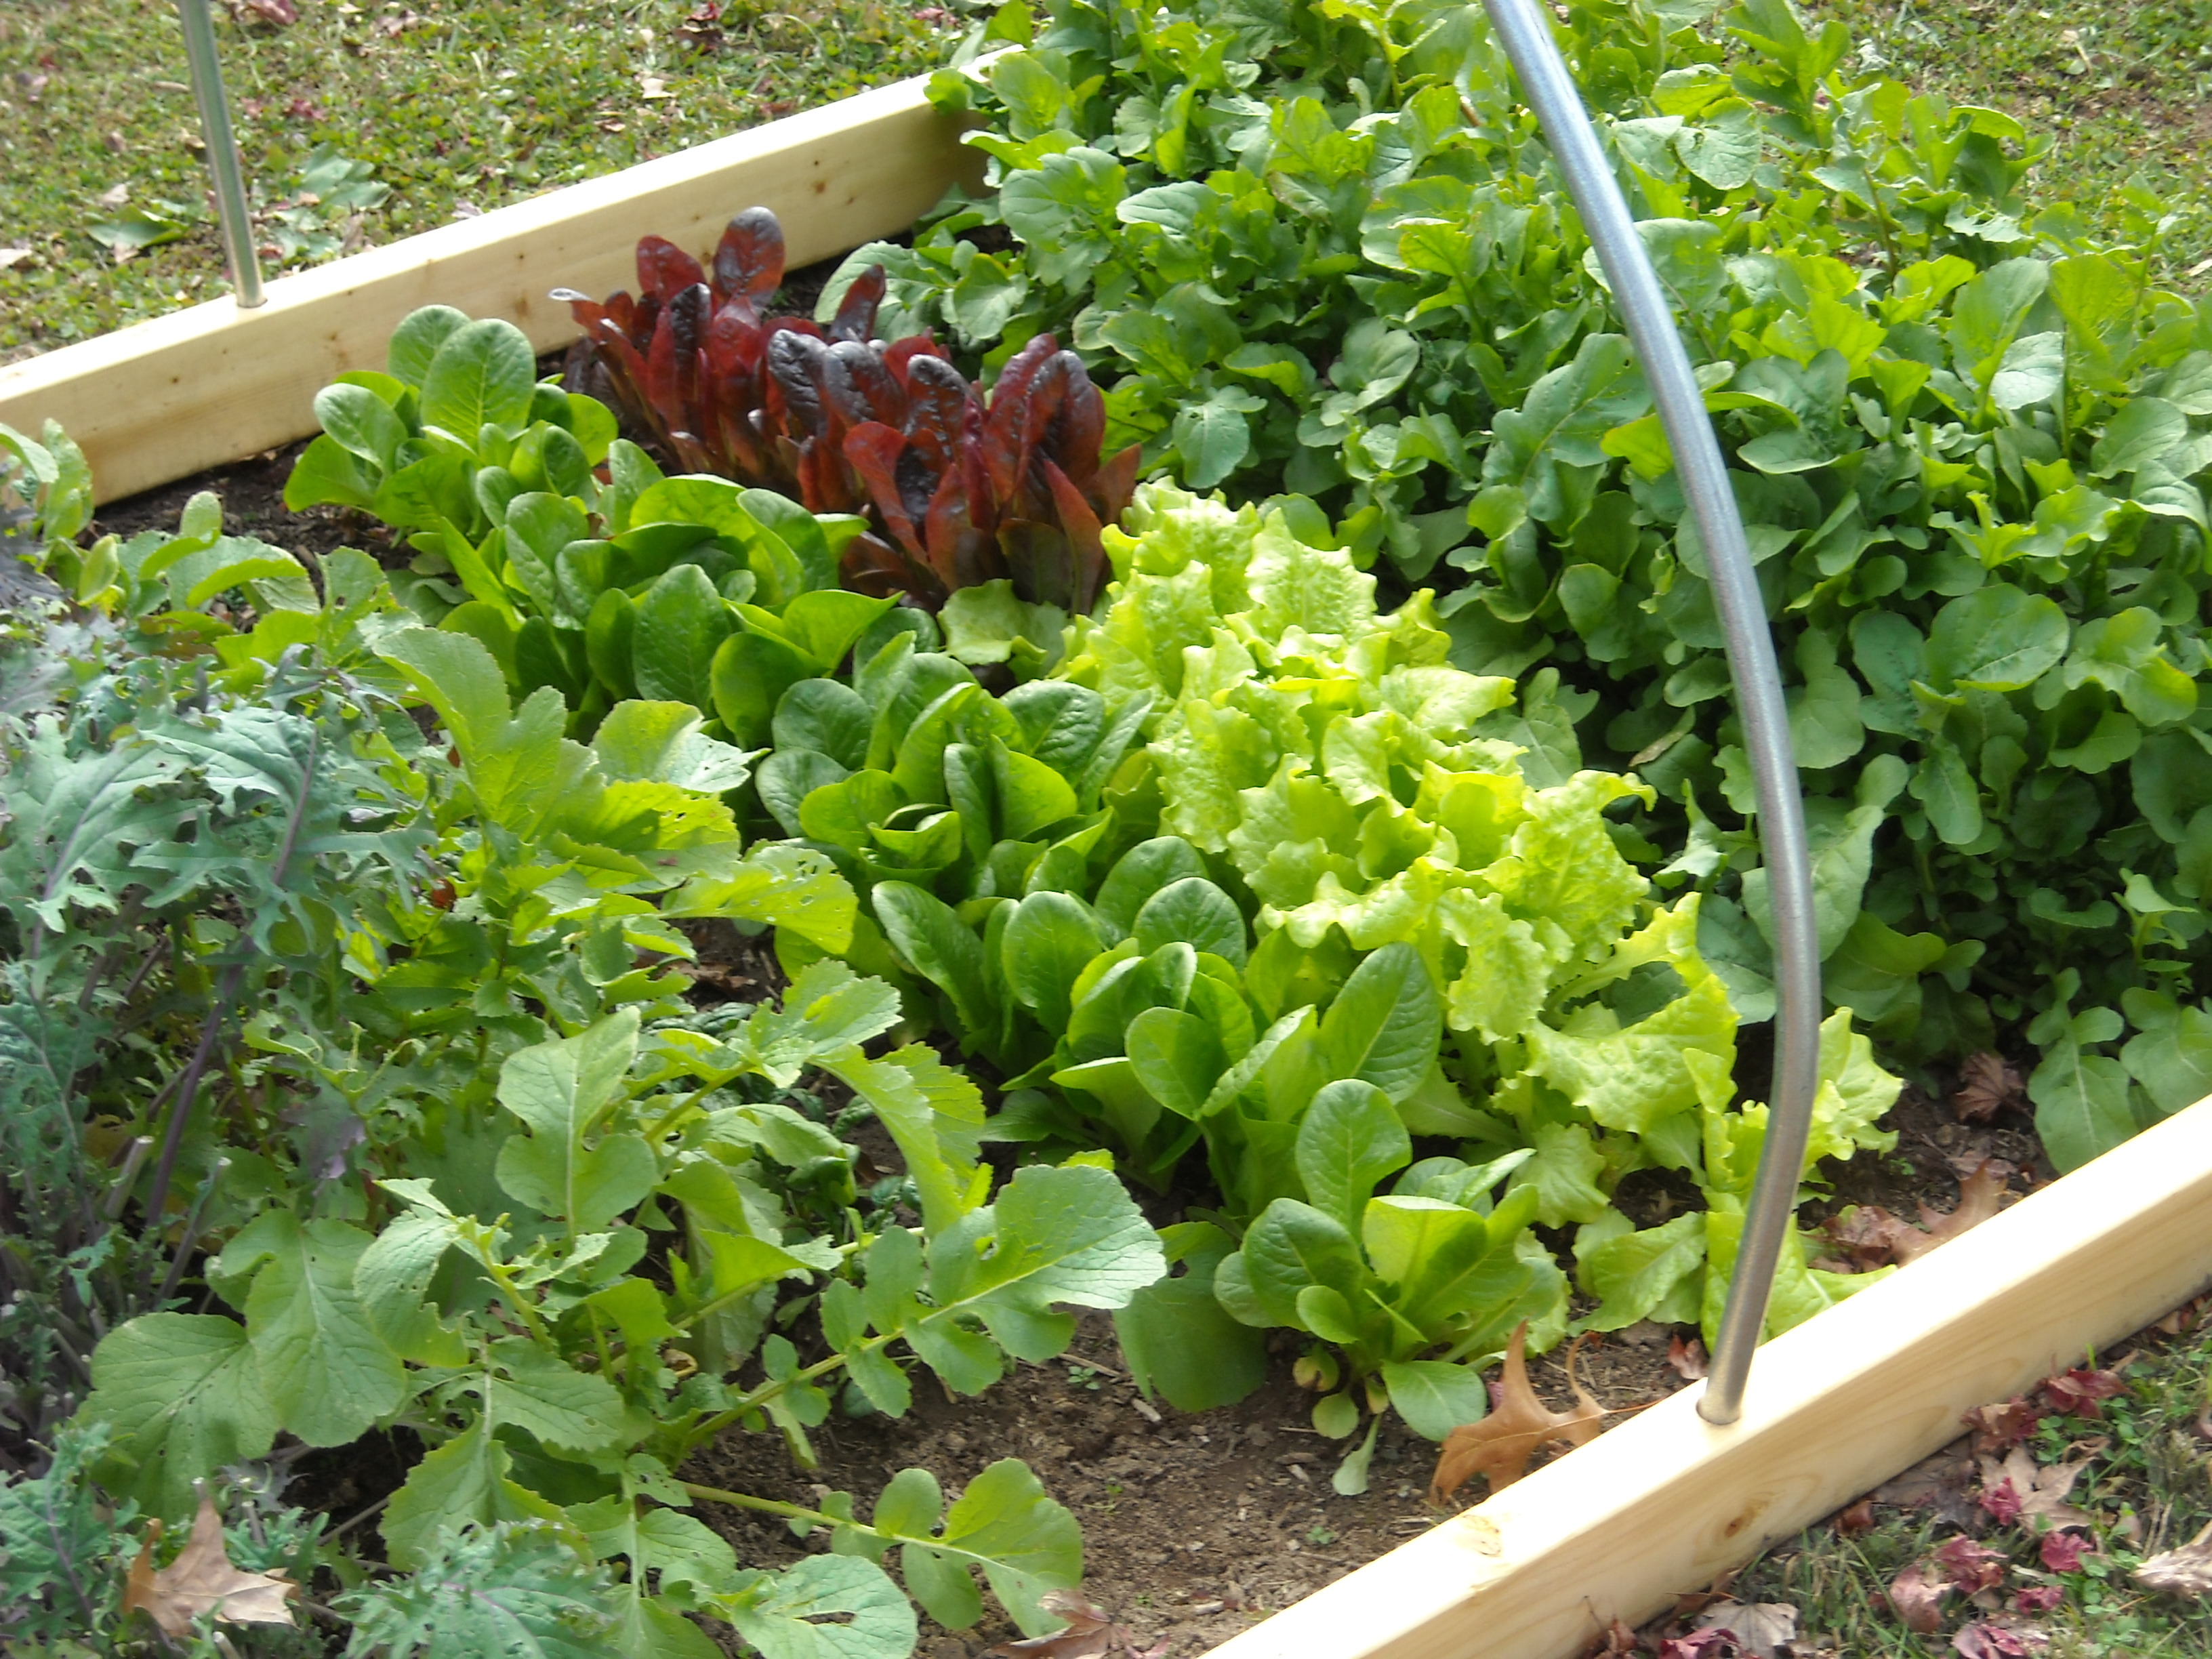 How to start an organic garden?